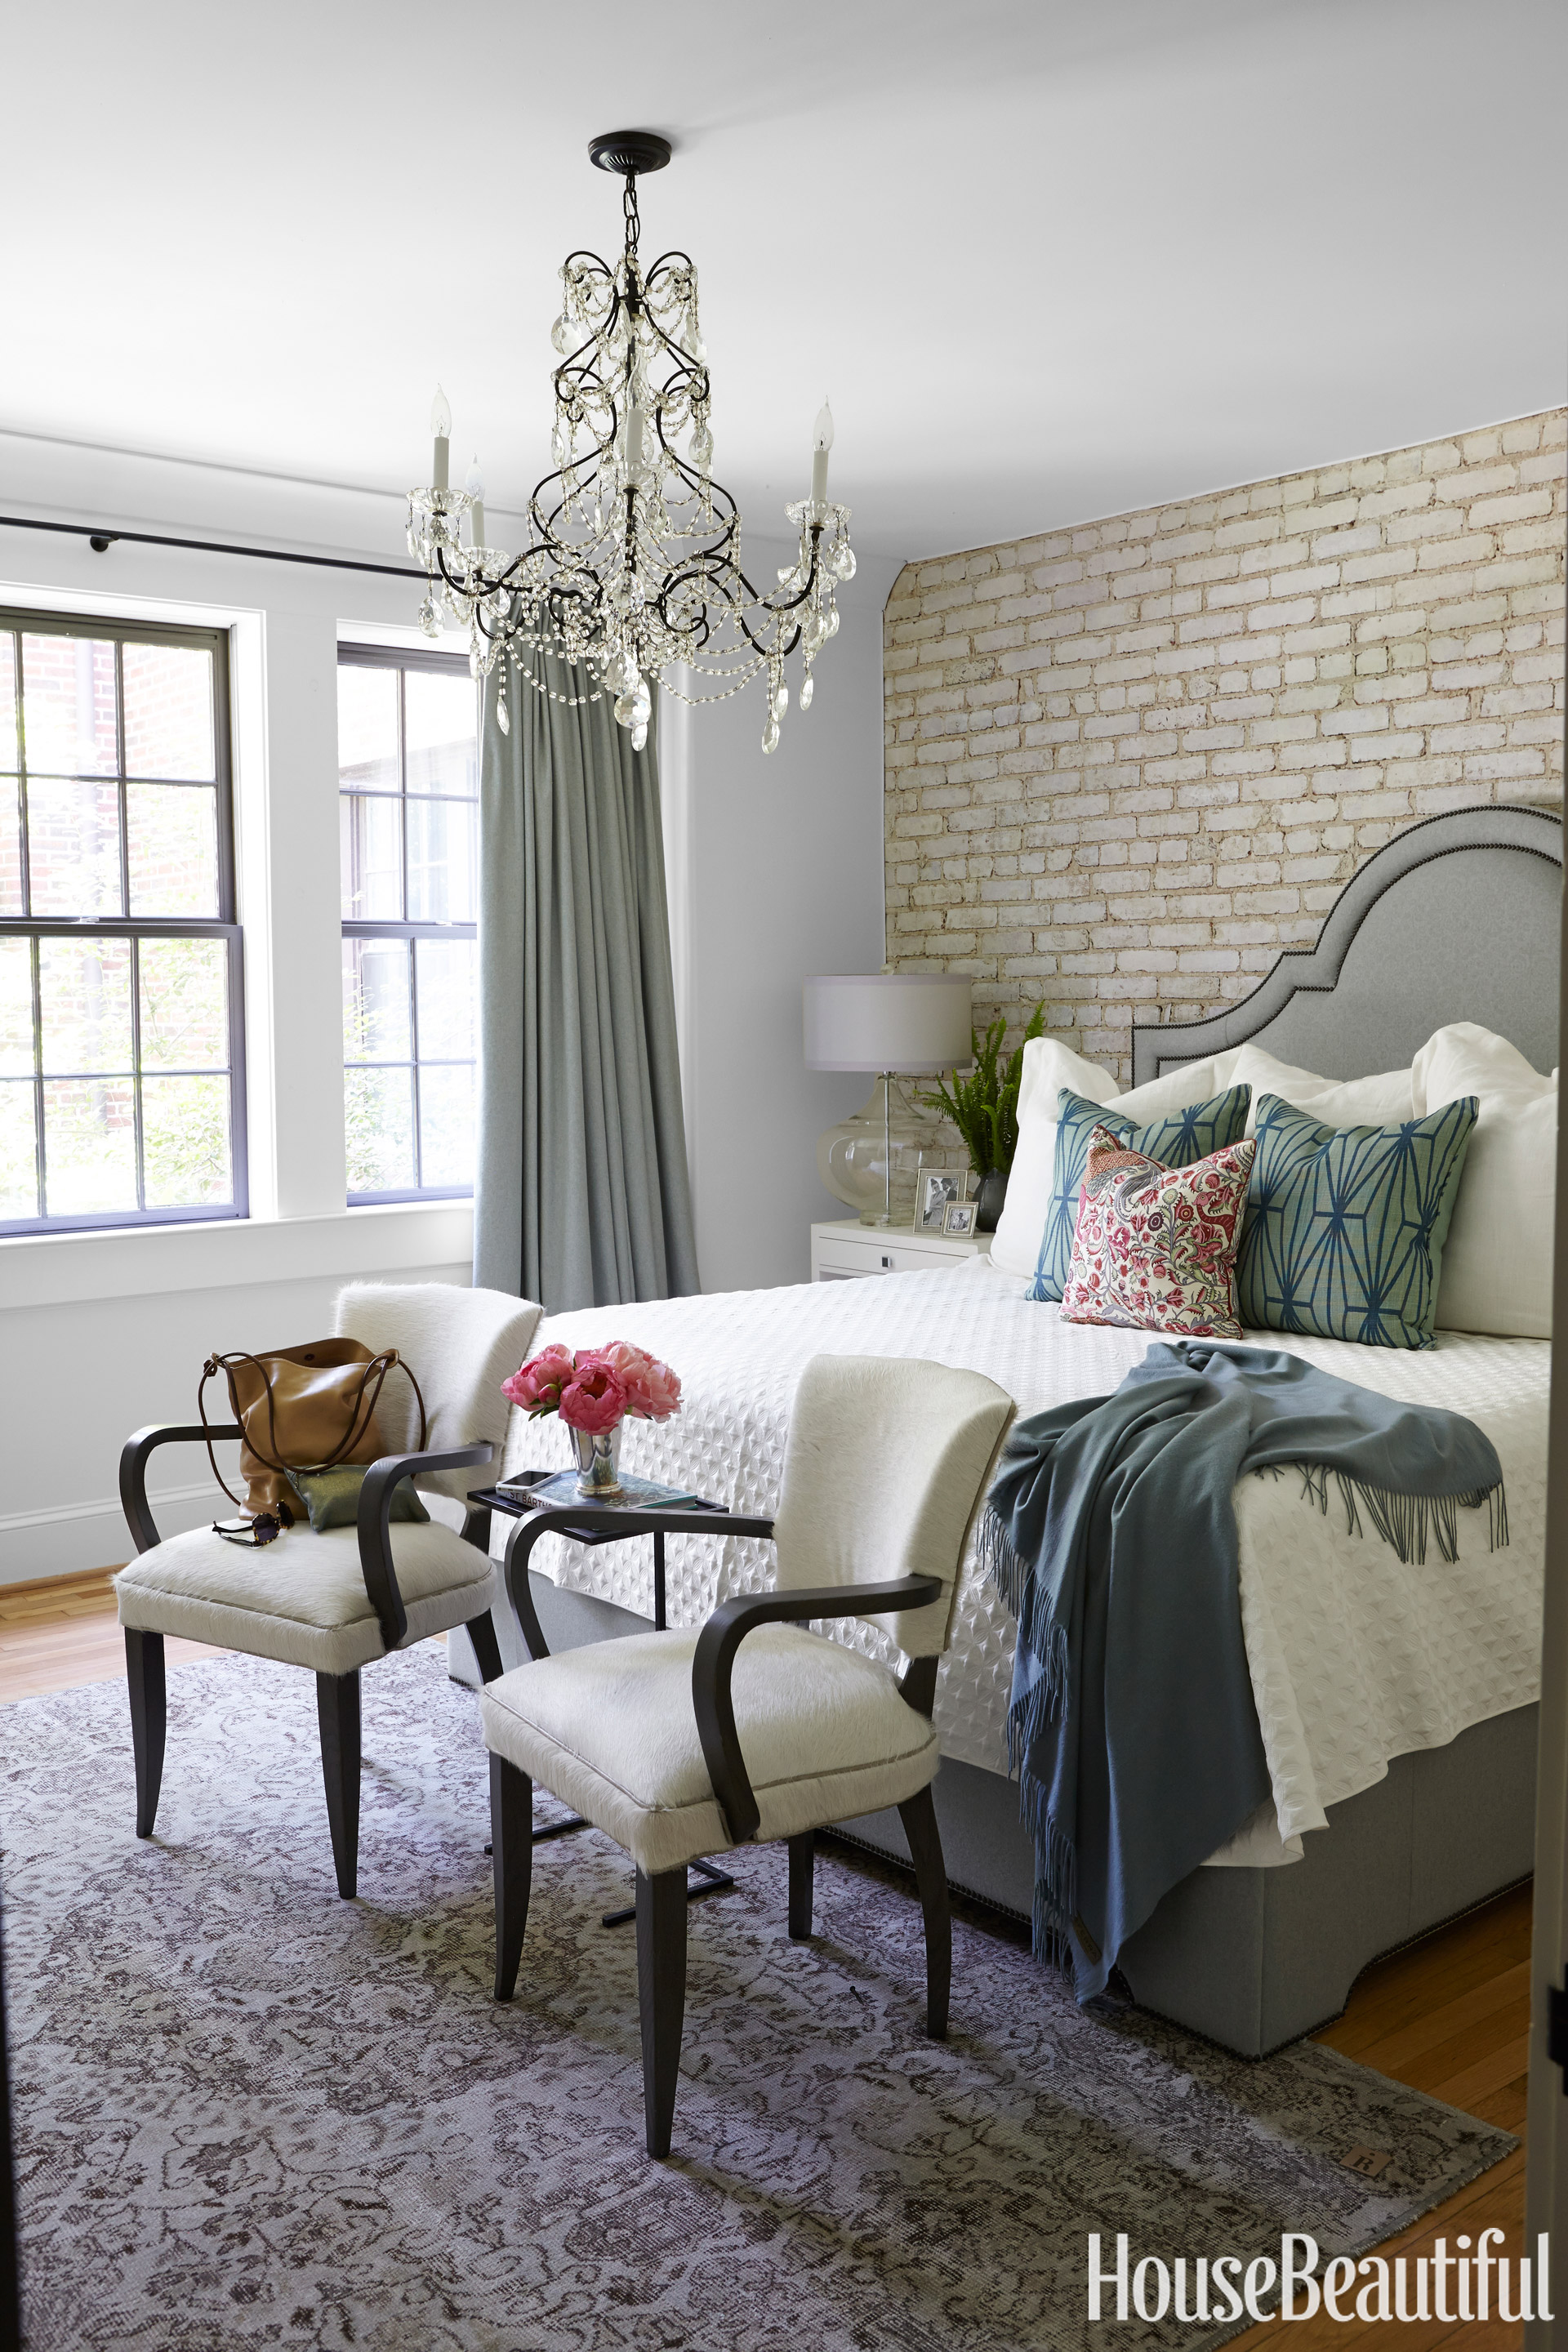 Pictures Of Beautiful Room Designs: 104 Bedroom Decorating Ideas